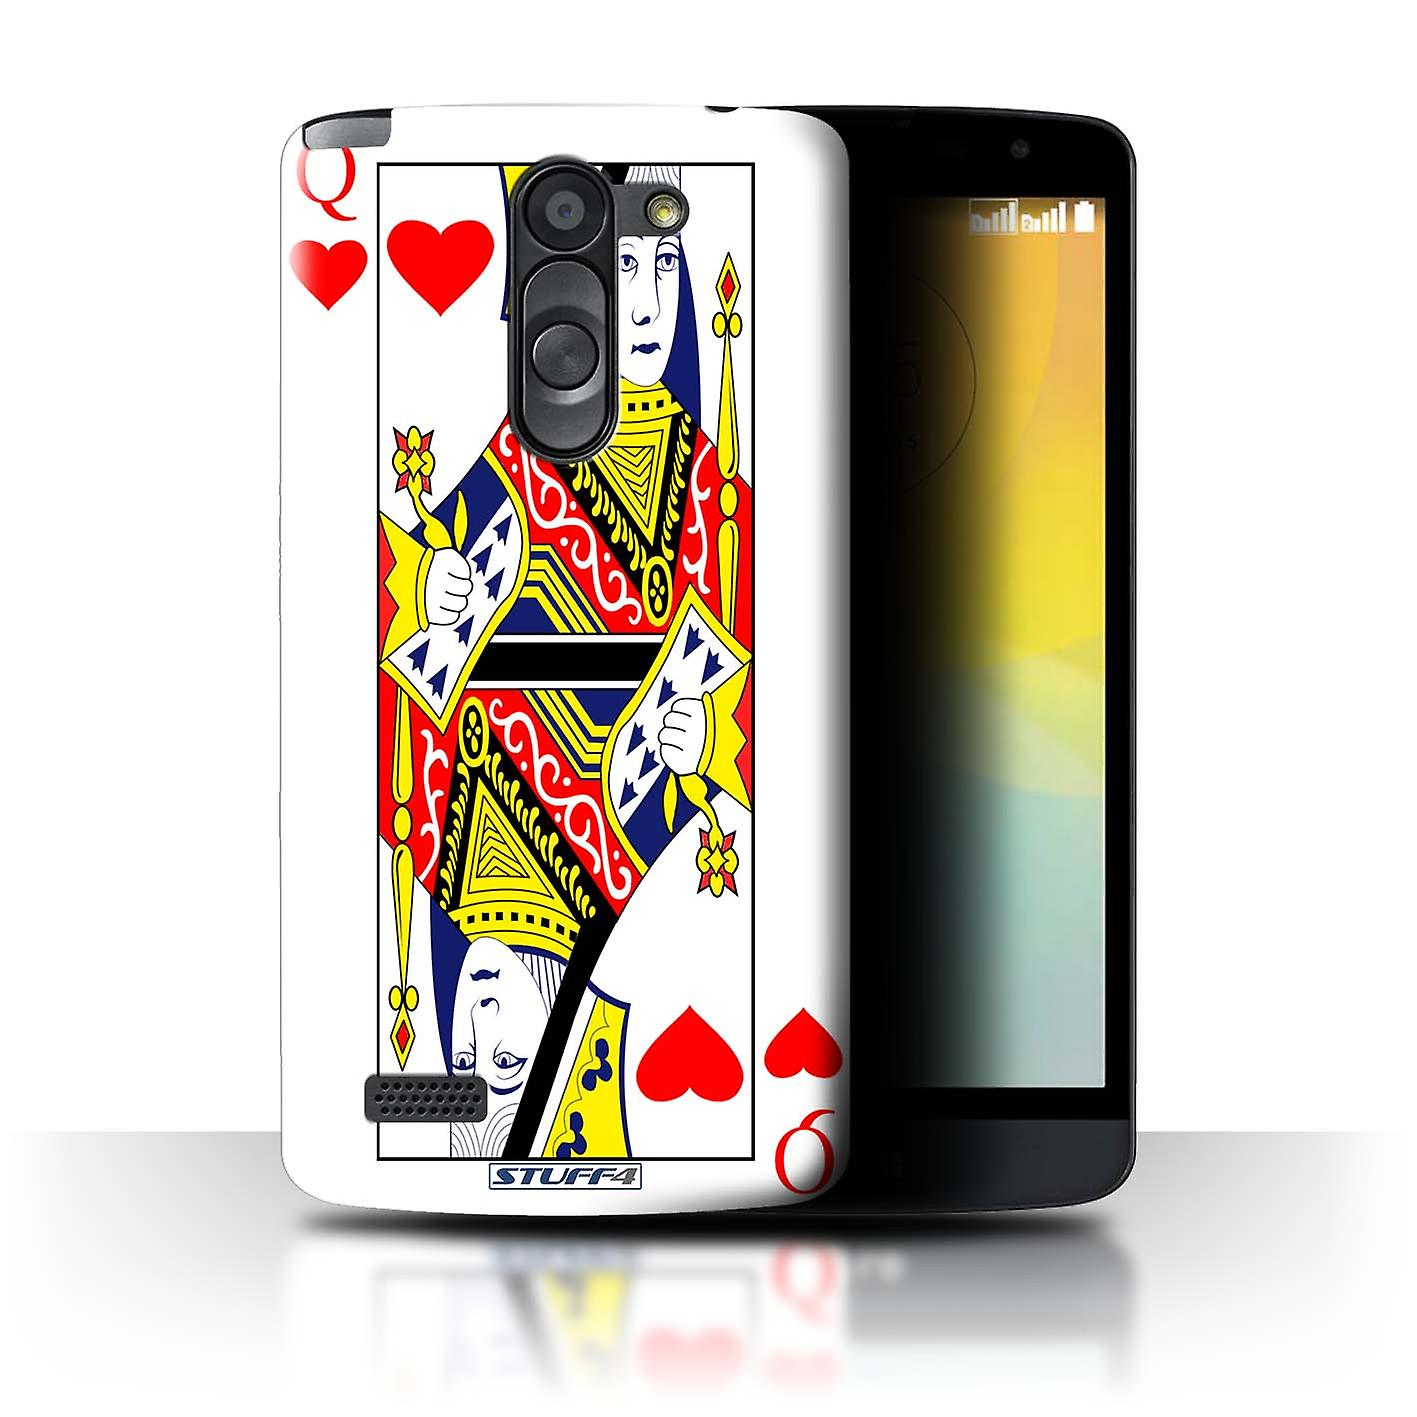 STUFF4 CaseCover For LG L BelloD331Queen Of Hearts